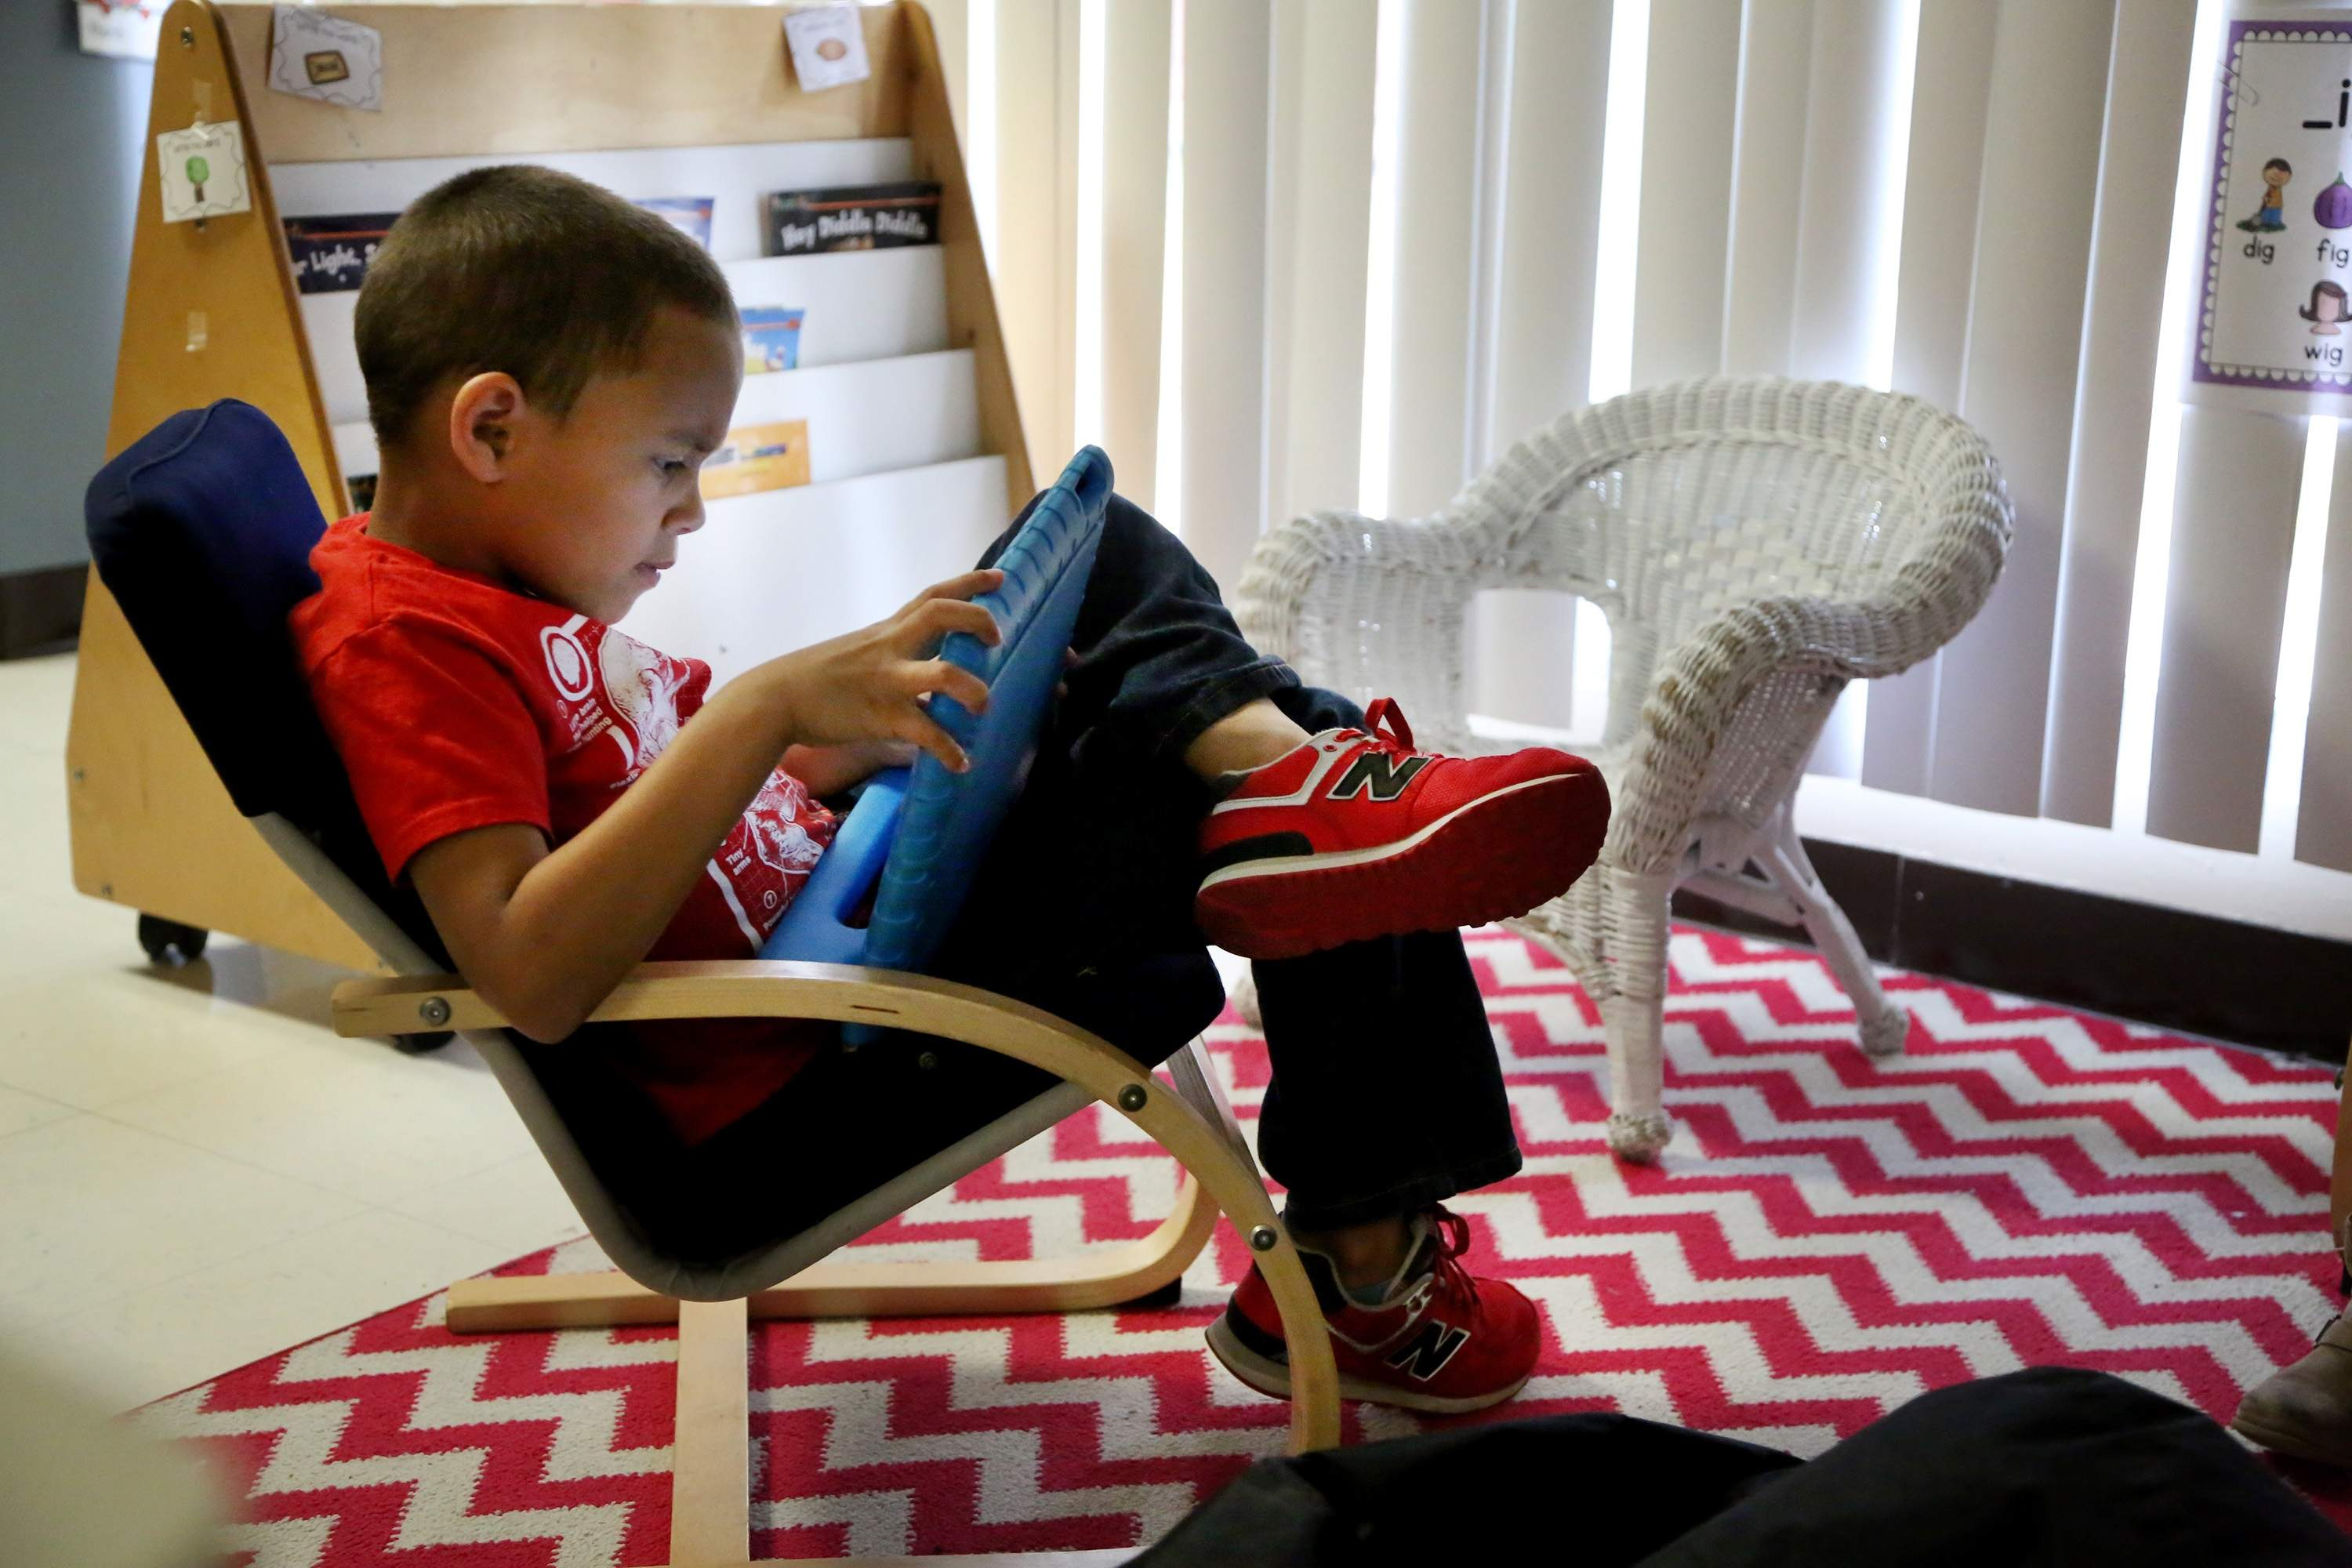 Chester Taylor Elementary School kindergartener Urijah Smiley, 5, used an iPad to access an reading application, Bookshelf, while practicing reading on Jan. 23, 2018, at the school in Zephyrhills.